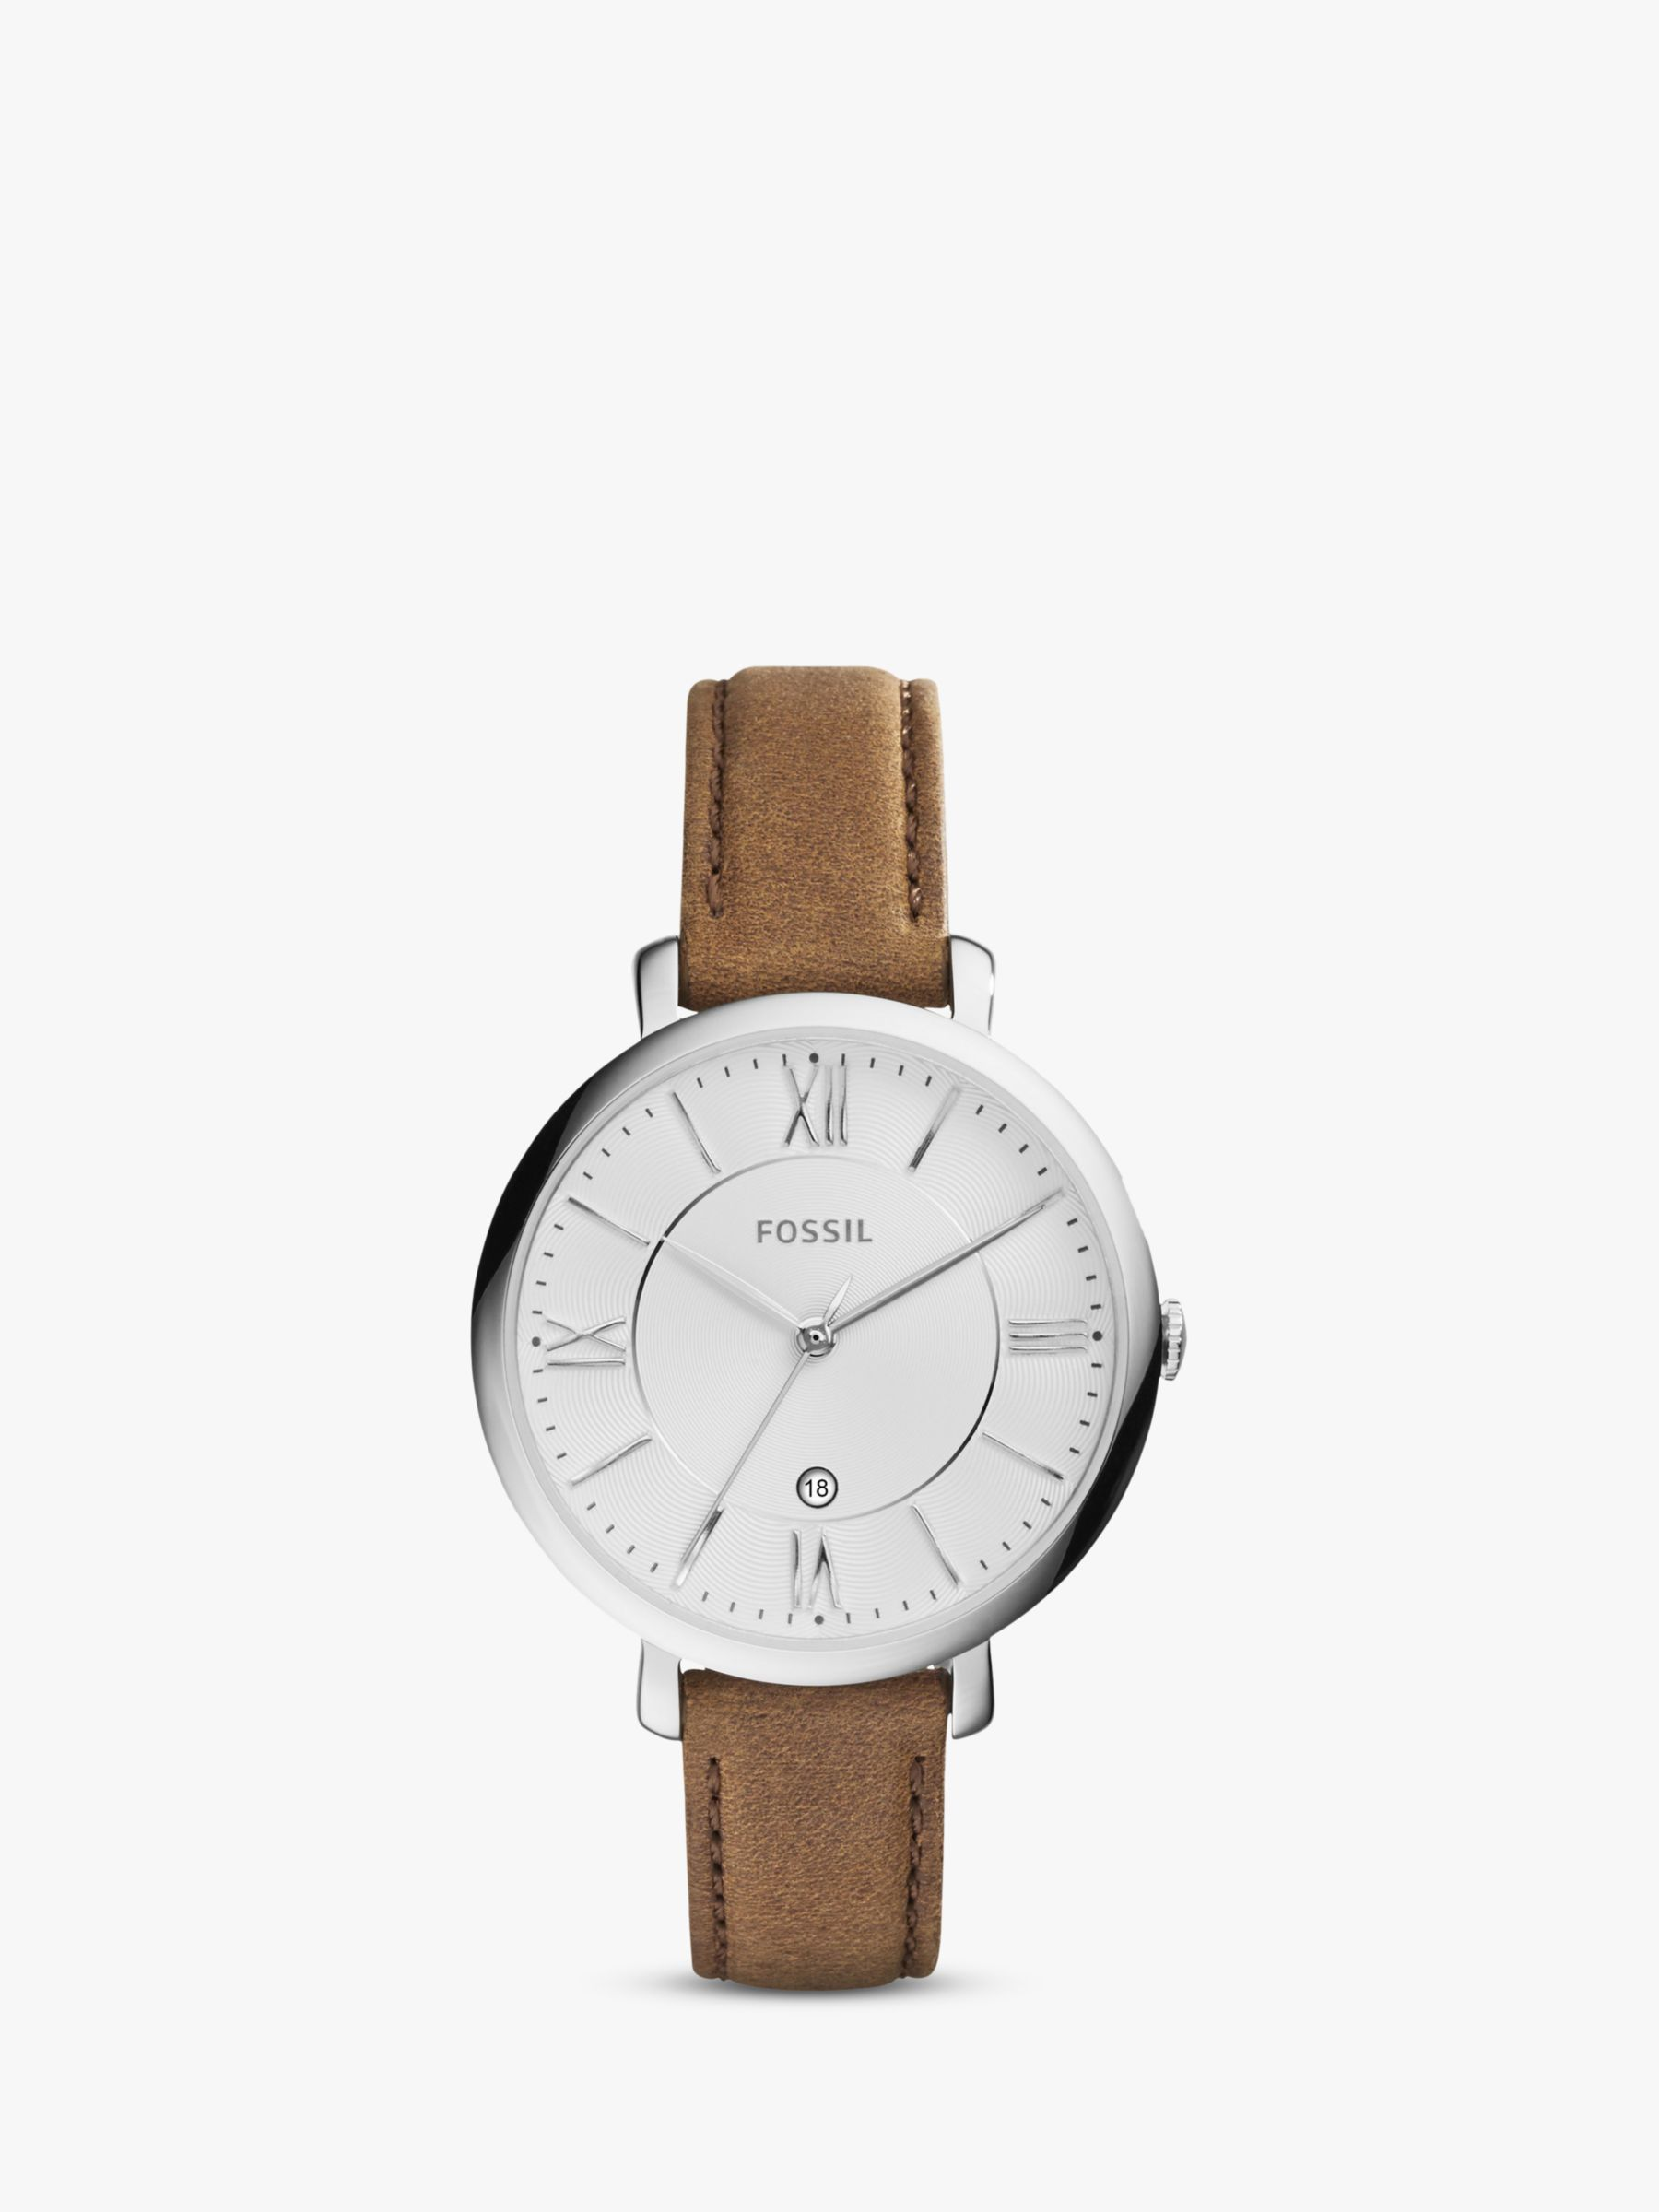 Fossil Fossil ES3708 Women's Jacqueline Date Leather Strap Watch, Brown/White